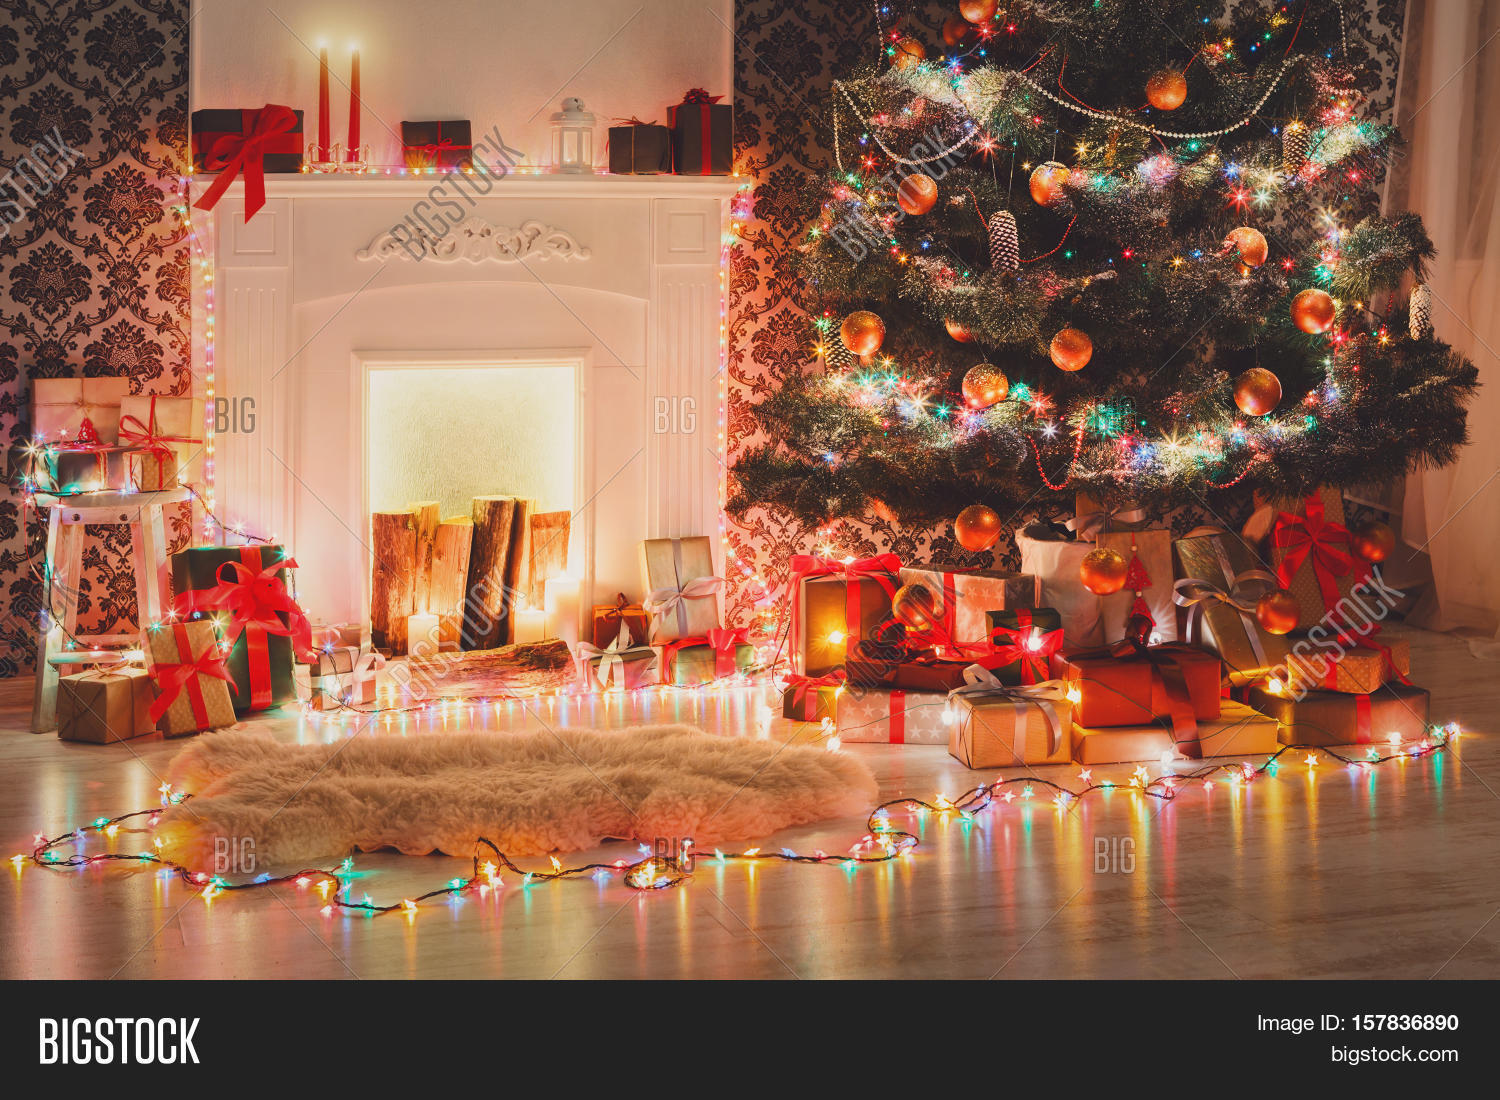 Christmas living room decorations beautiful xmas lights for Christmas gifts for interior designers